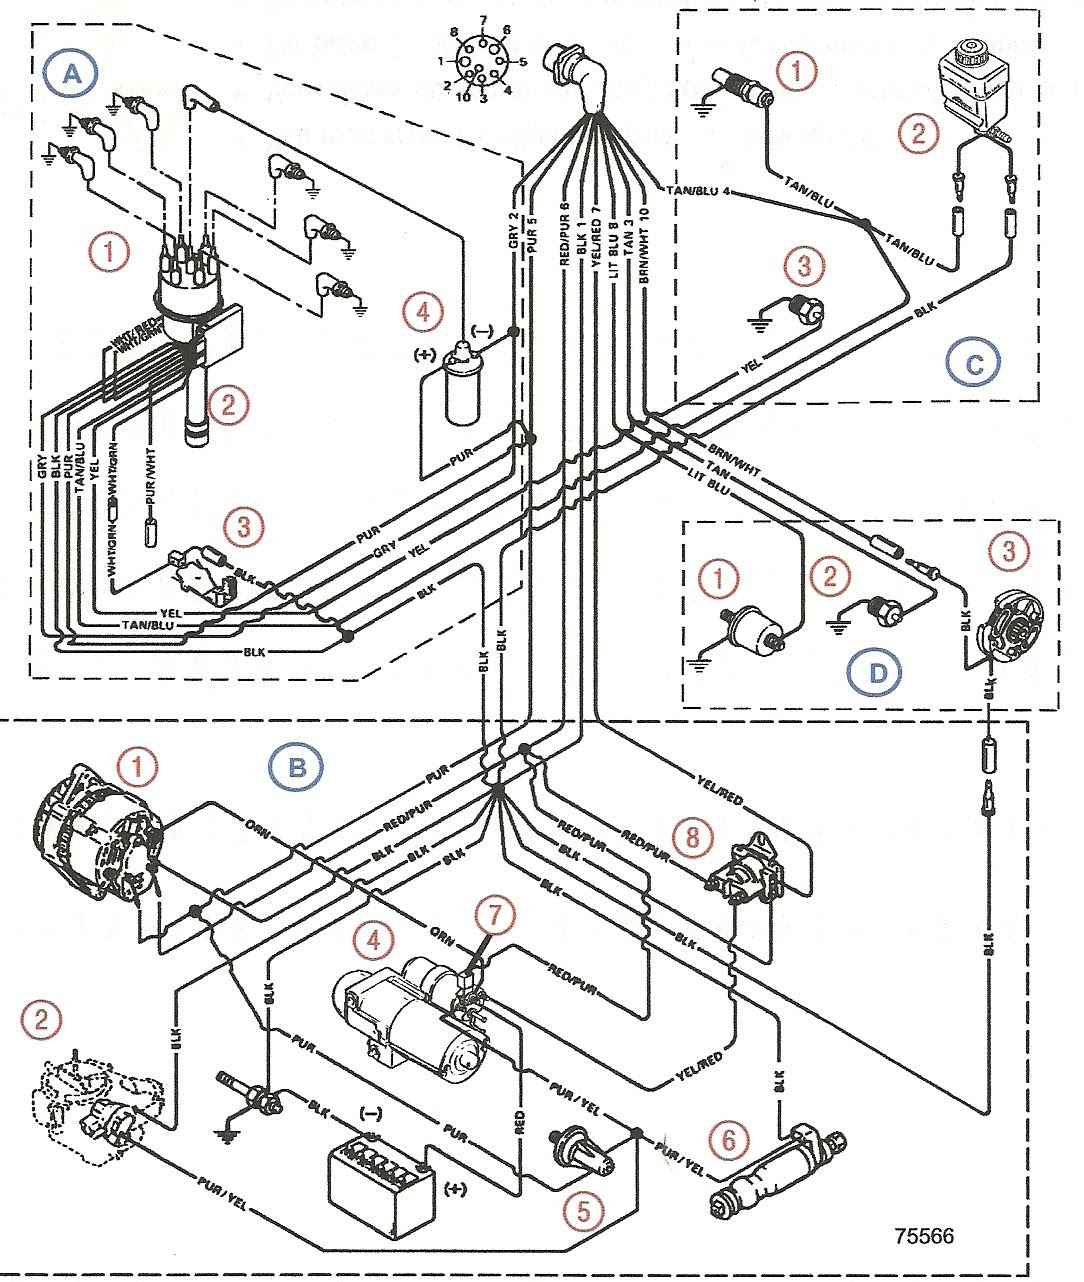 Boat Trim Gauge Wiring Diagram from lh3.googleusercontent.com